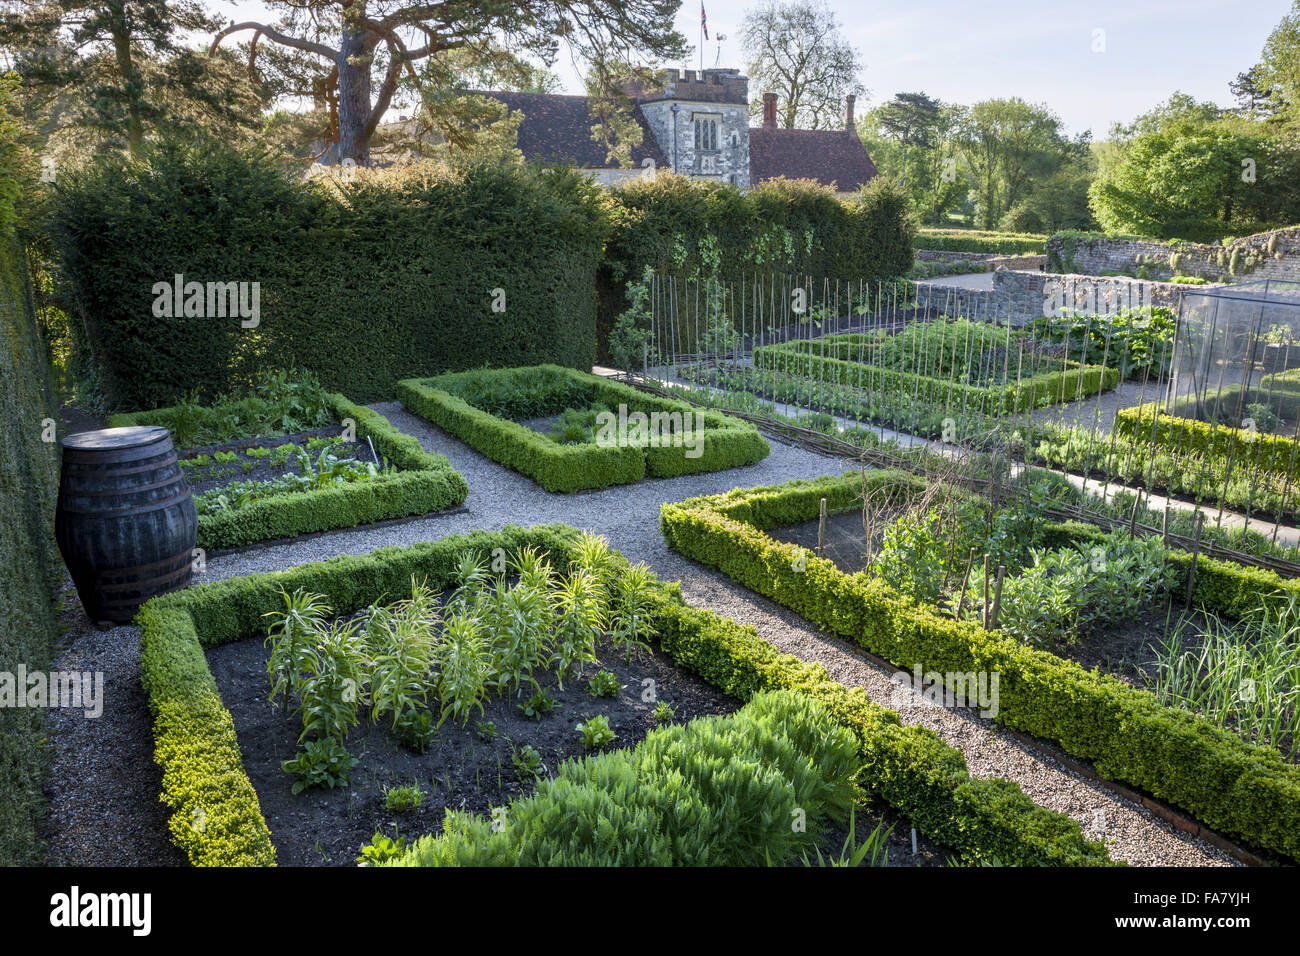 The vegetable garden at Ightham Mote, Kent. - Stock Image